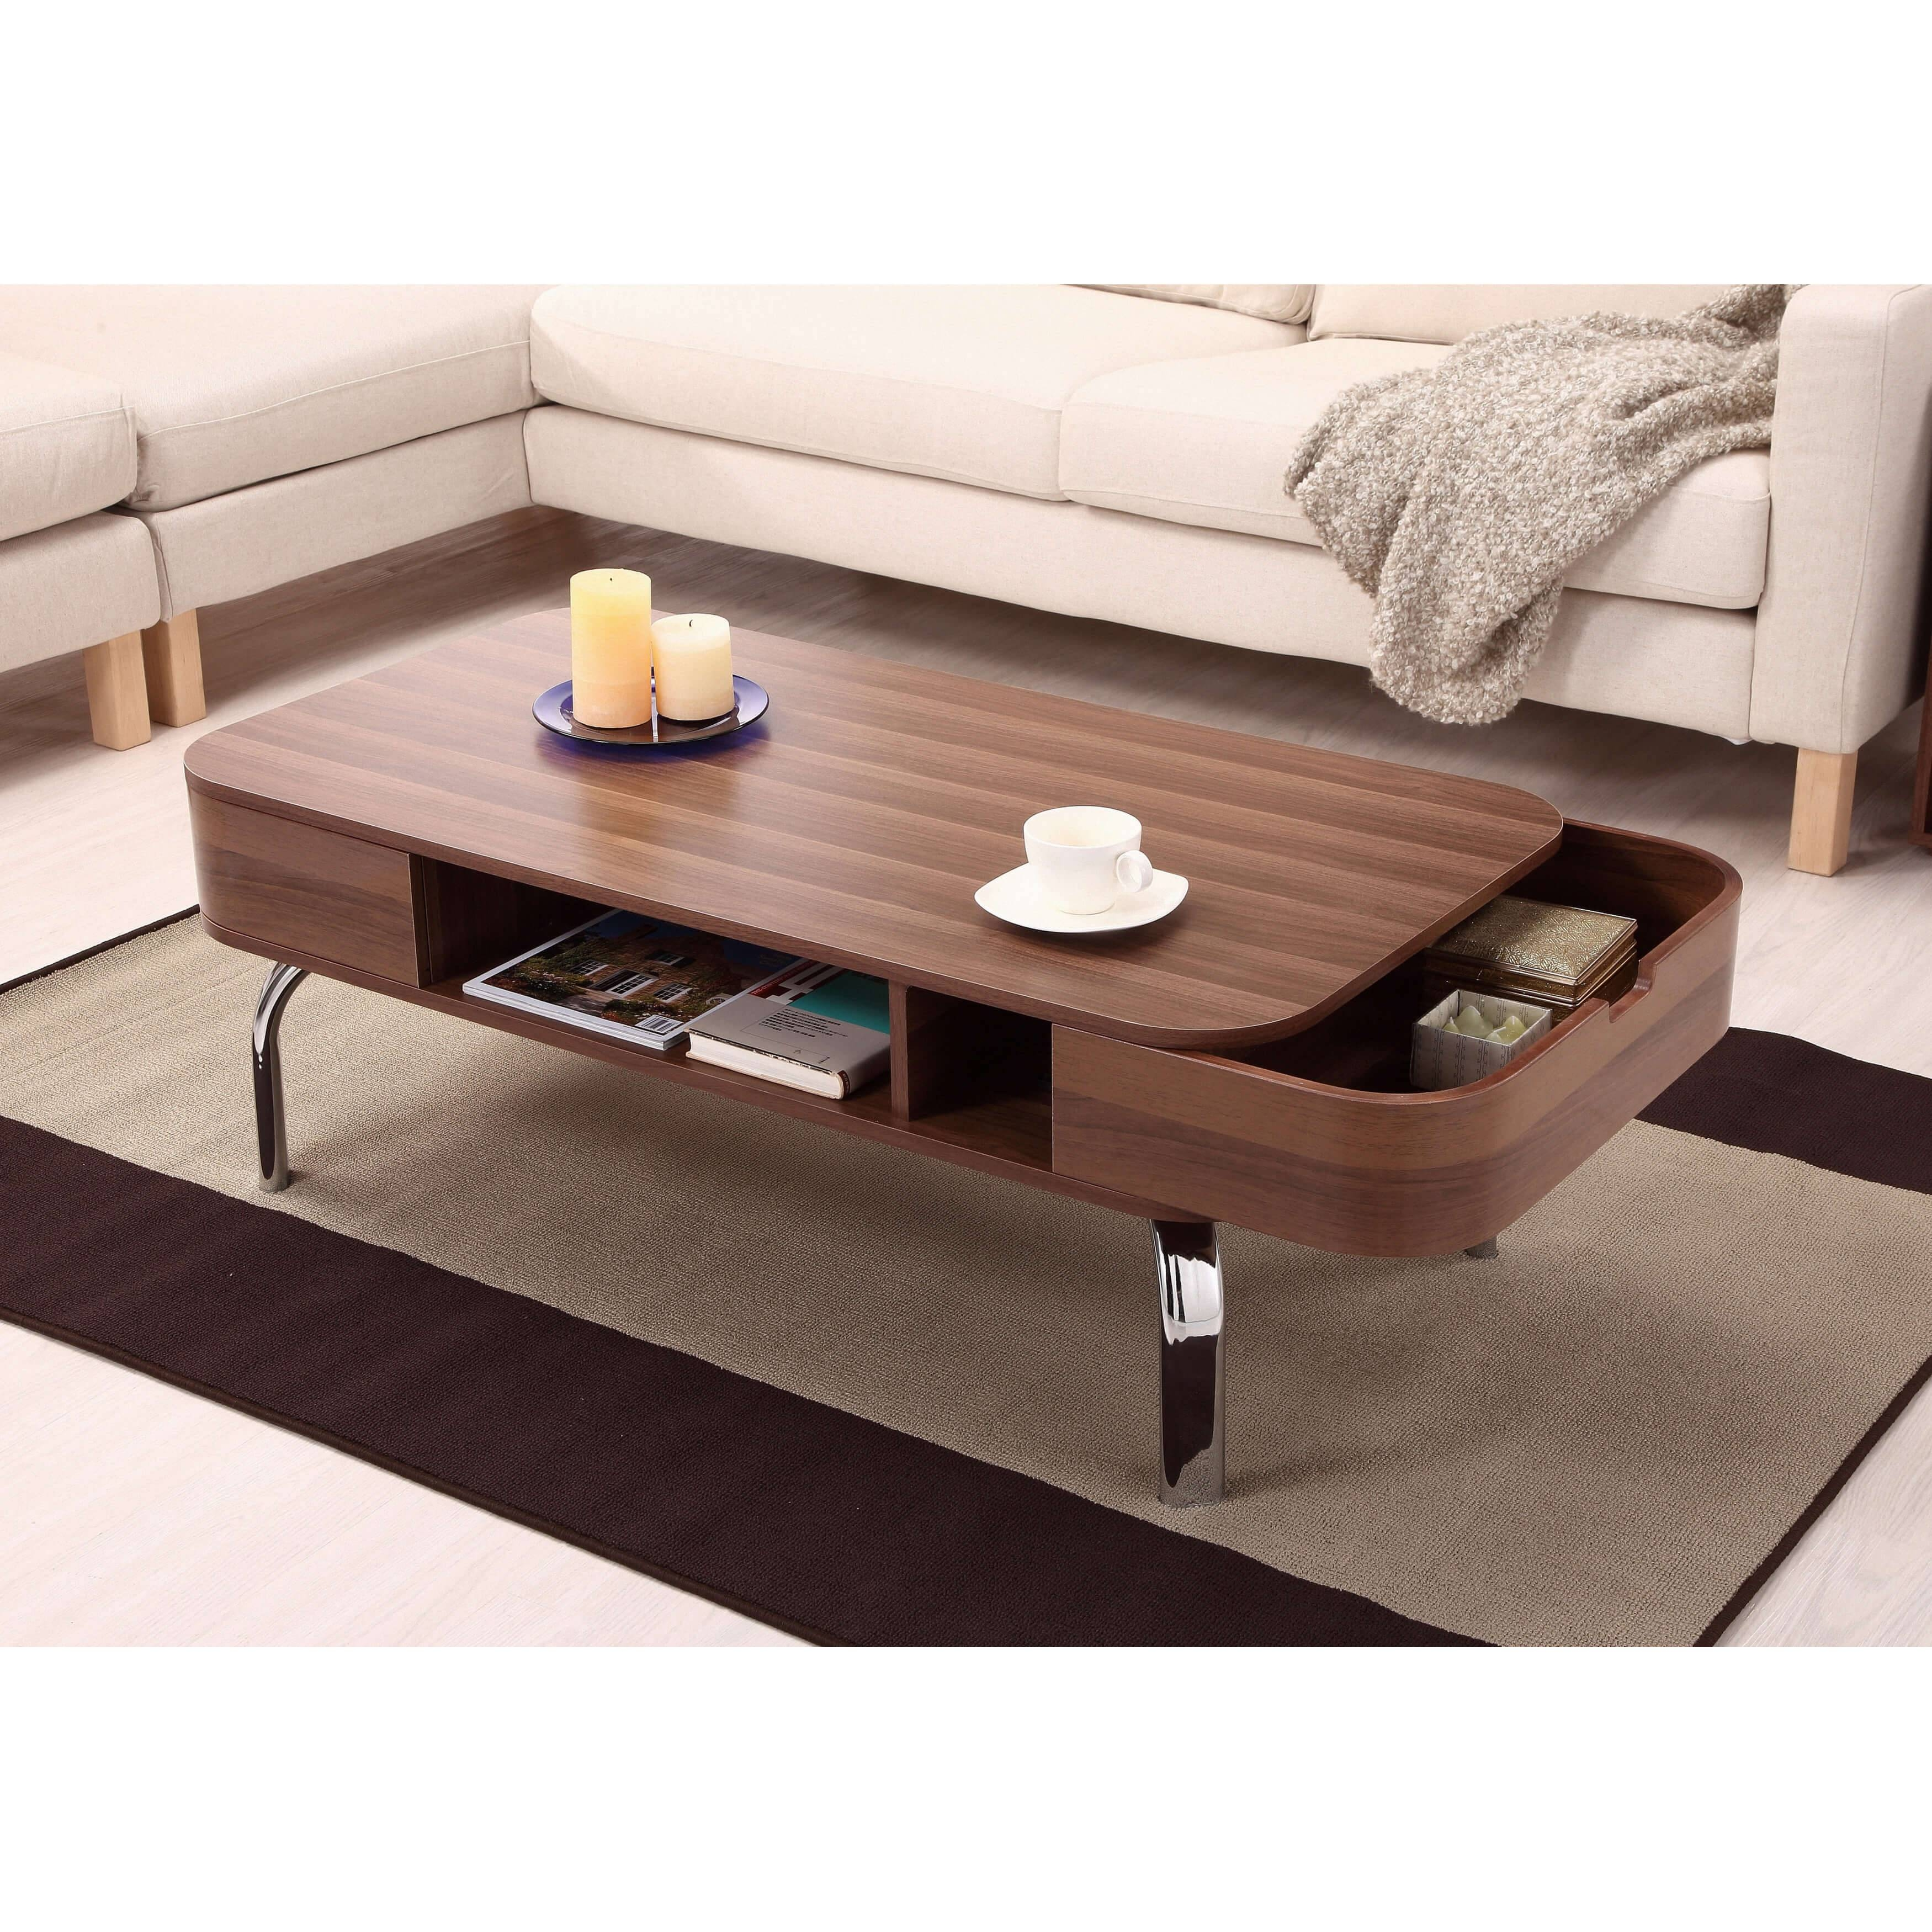 Modern Coffee Table Contemporary Wooden Coffee Tables Brown Finish with Coffee Tables With Oval Shape (Image 19 of 30)